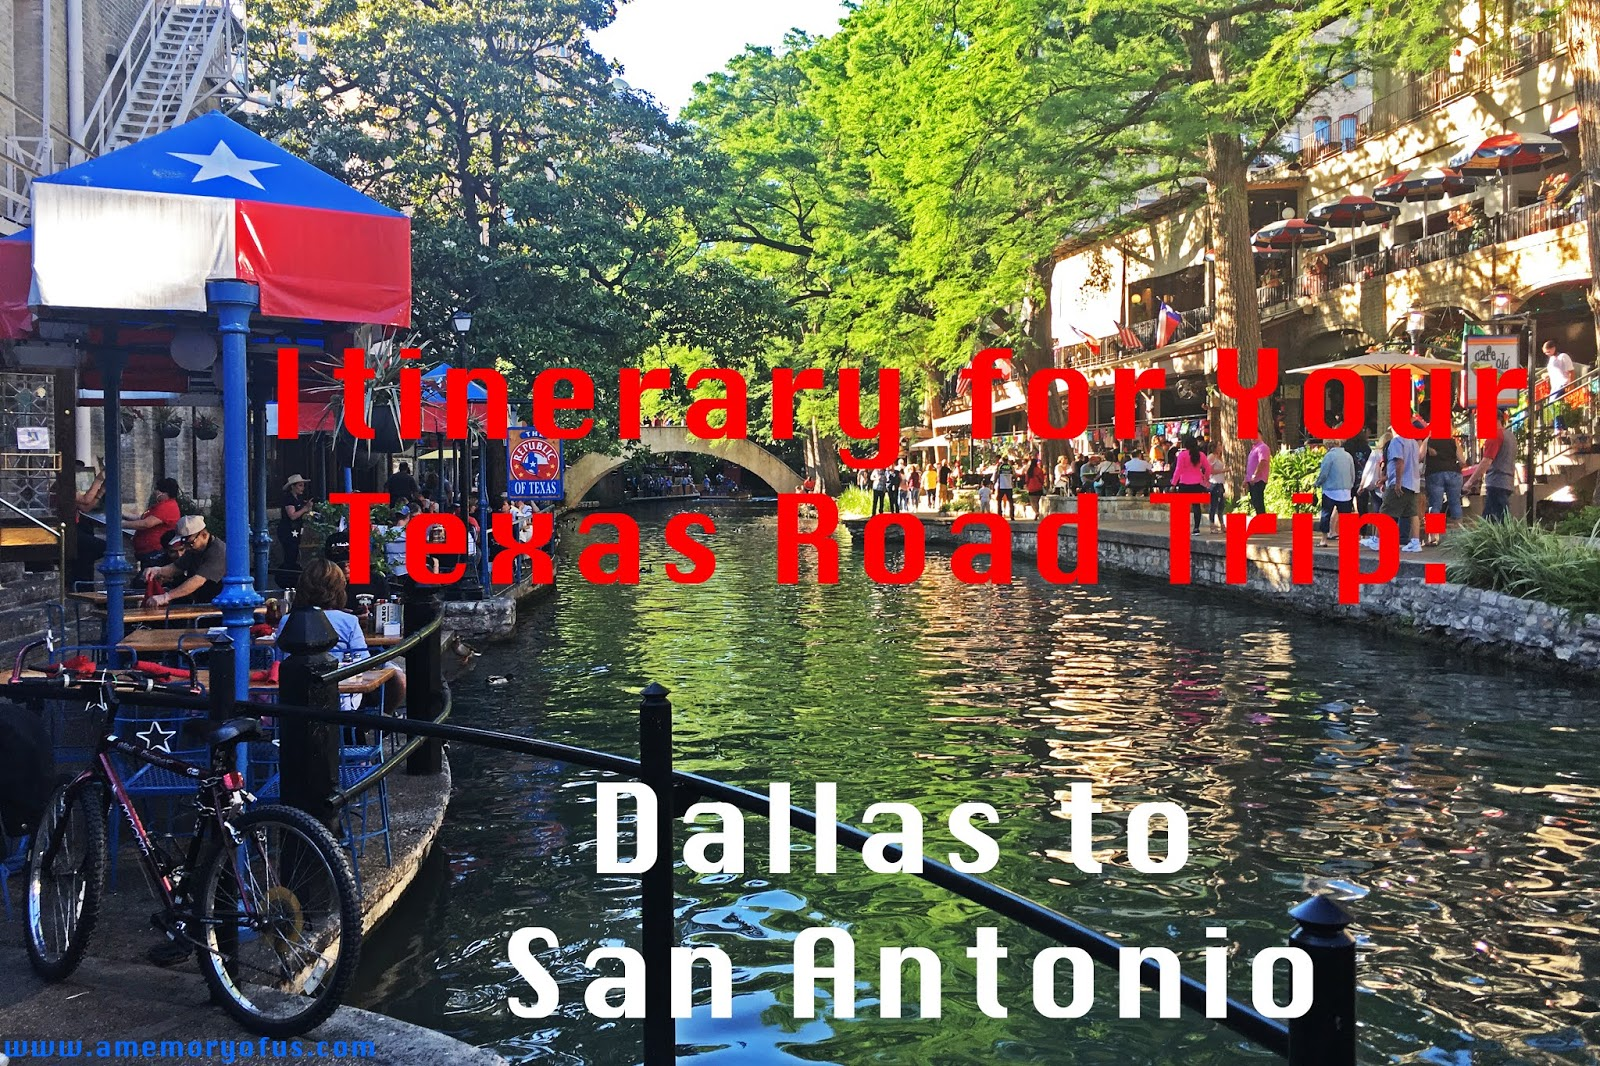 Itinerary for a Texas Road Trip: Dallas to San Antonio | Texas Road Trip Ideas | Road Tripping from Dallas to San Antonio | Driving from Dallas to San Antonio | A Memory of Us